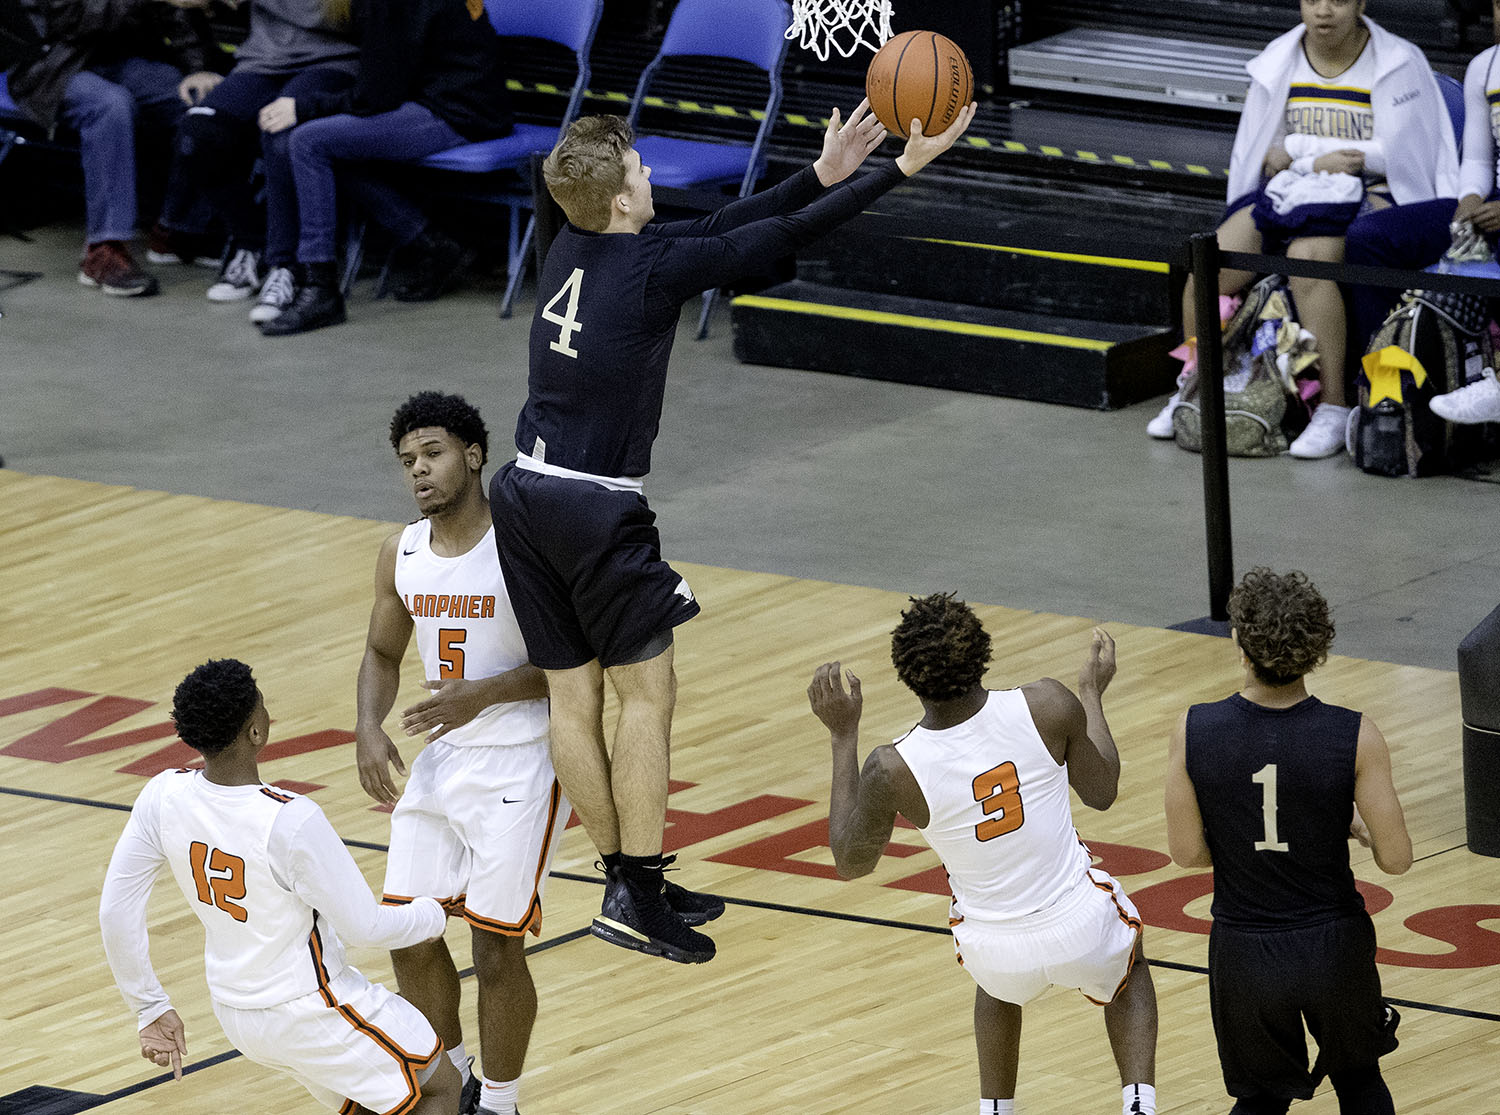 Sacred Heart-Griffin's Charlie Hamilton drives past Lanphier's Stanley Morgan  on his way to the hoop during the Boys City Tournament at the Bank of Springfield Center Thursday, Jan. 17, 2019.  [Ted Schurter/The State Journal-Register]